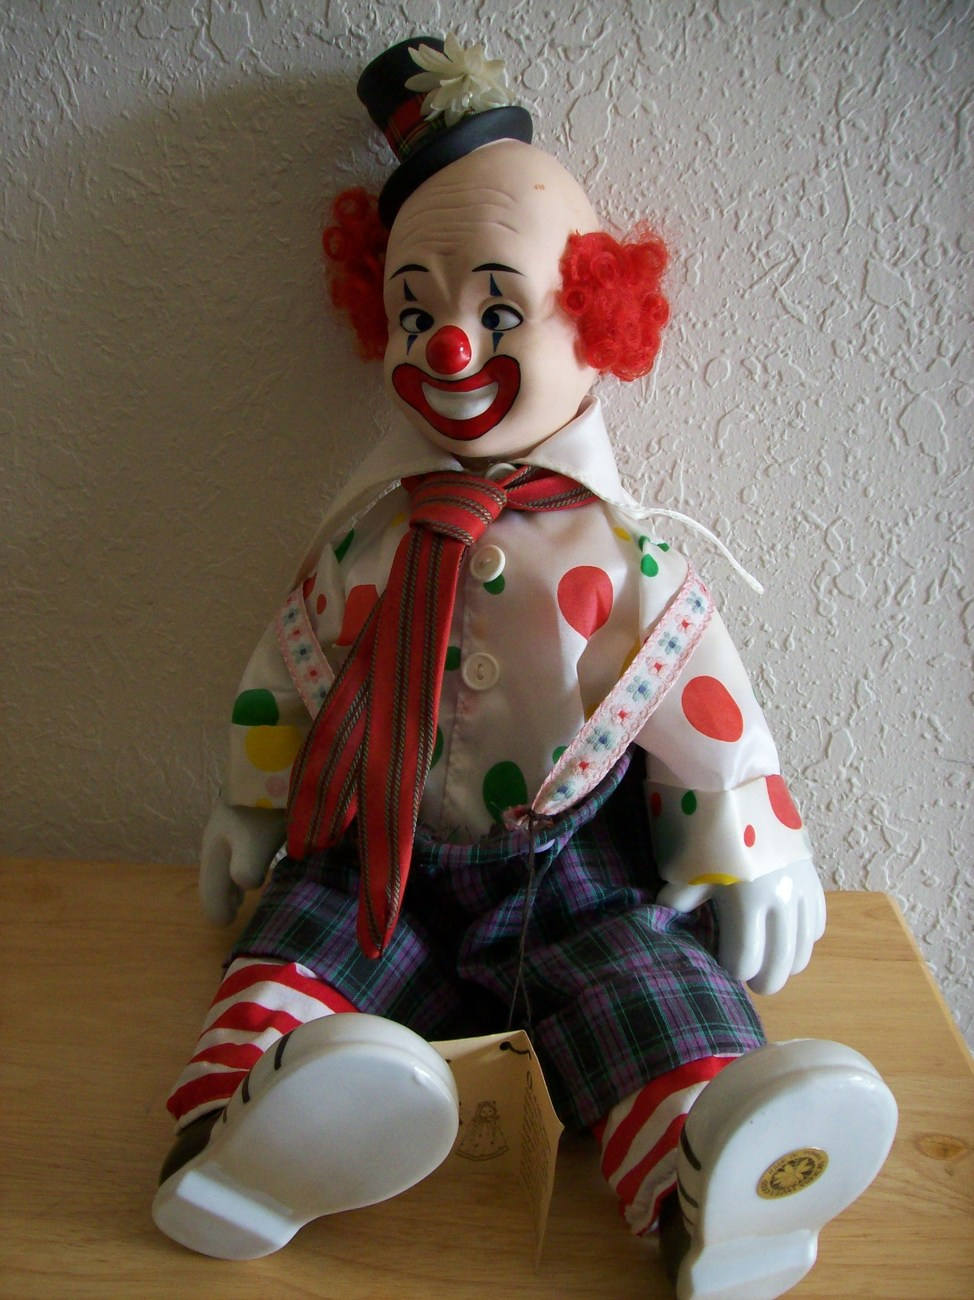 Musical Porcelain Clown by Victoria Collectibles